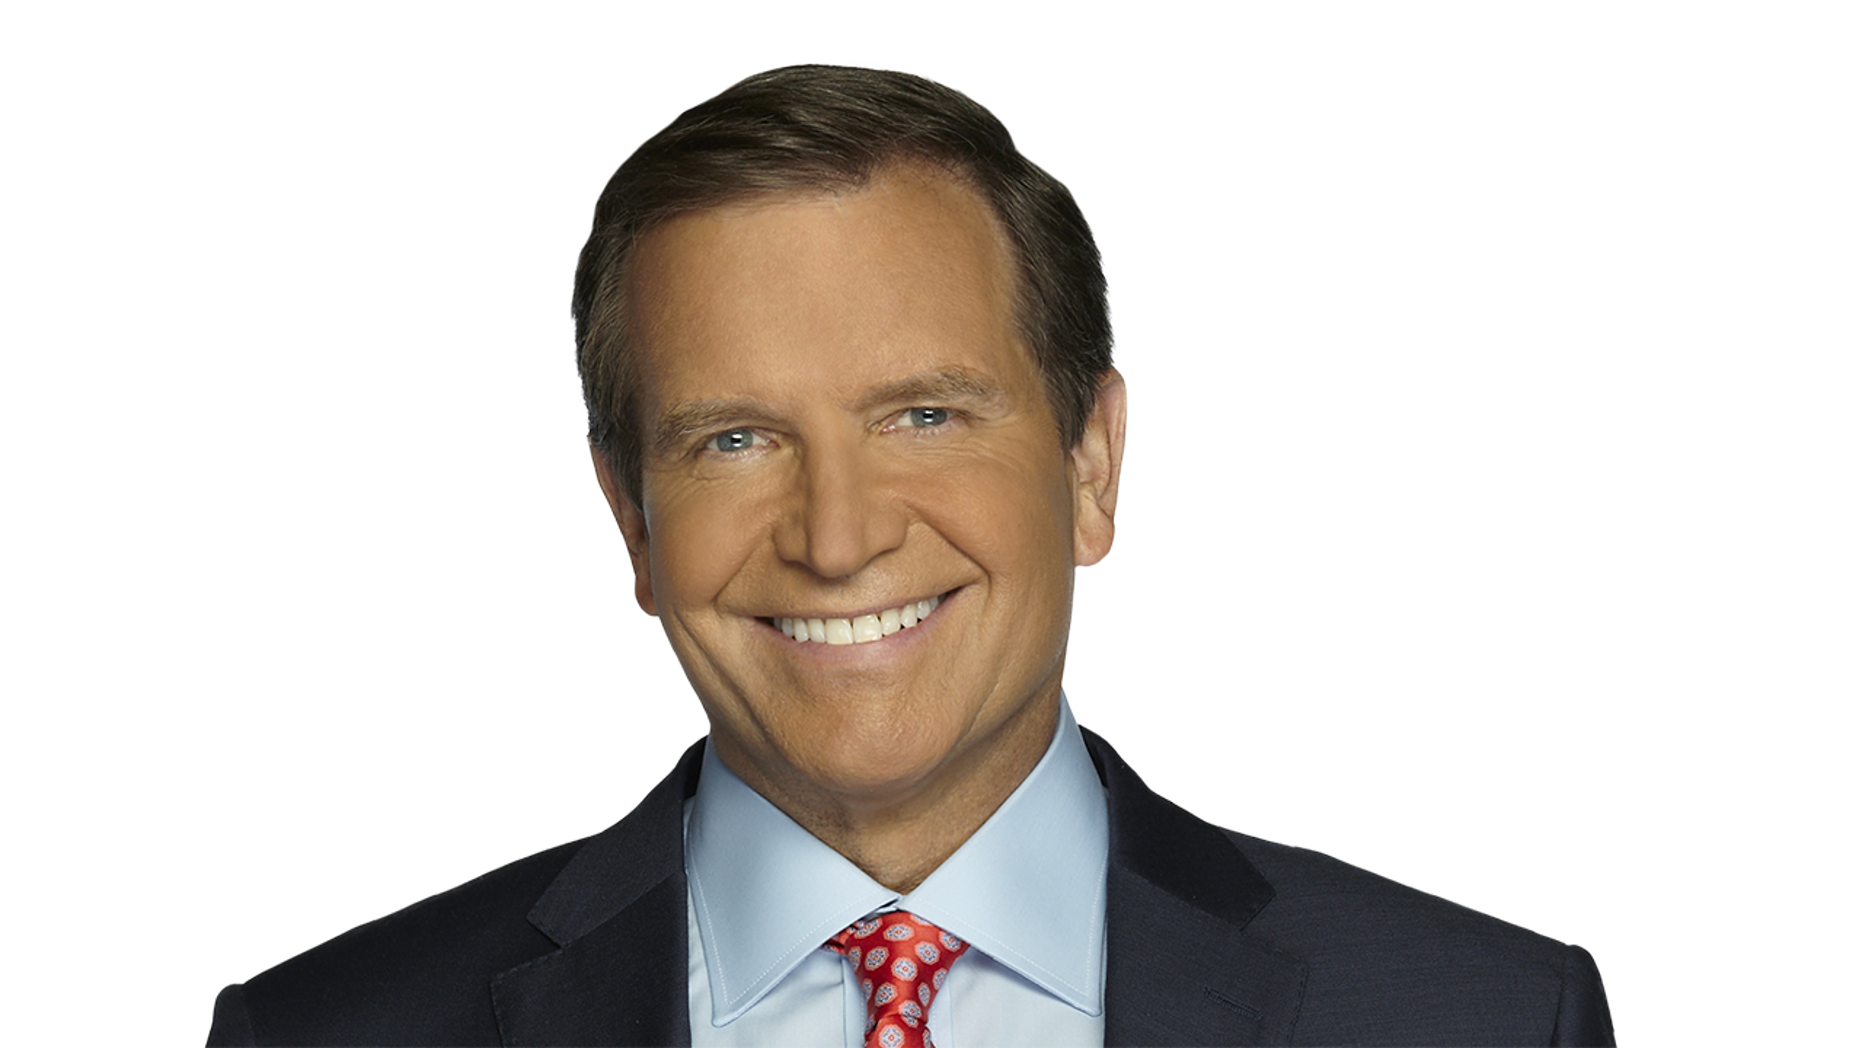 Fox News anchor Jon Scott will be honored during the New Year's Eve celebration in Times Square.